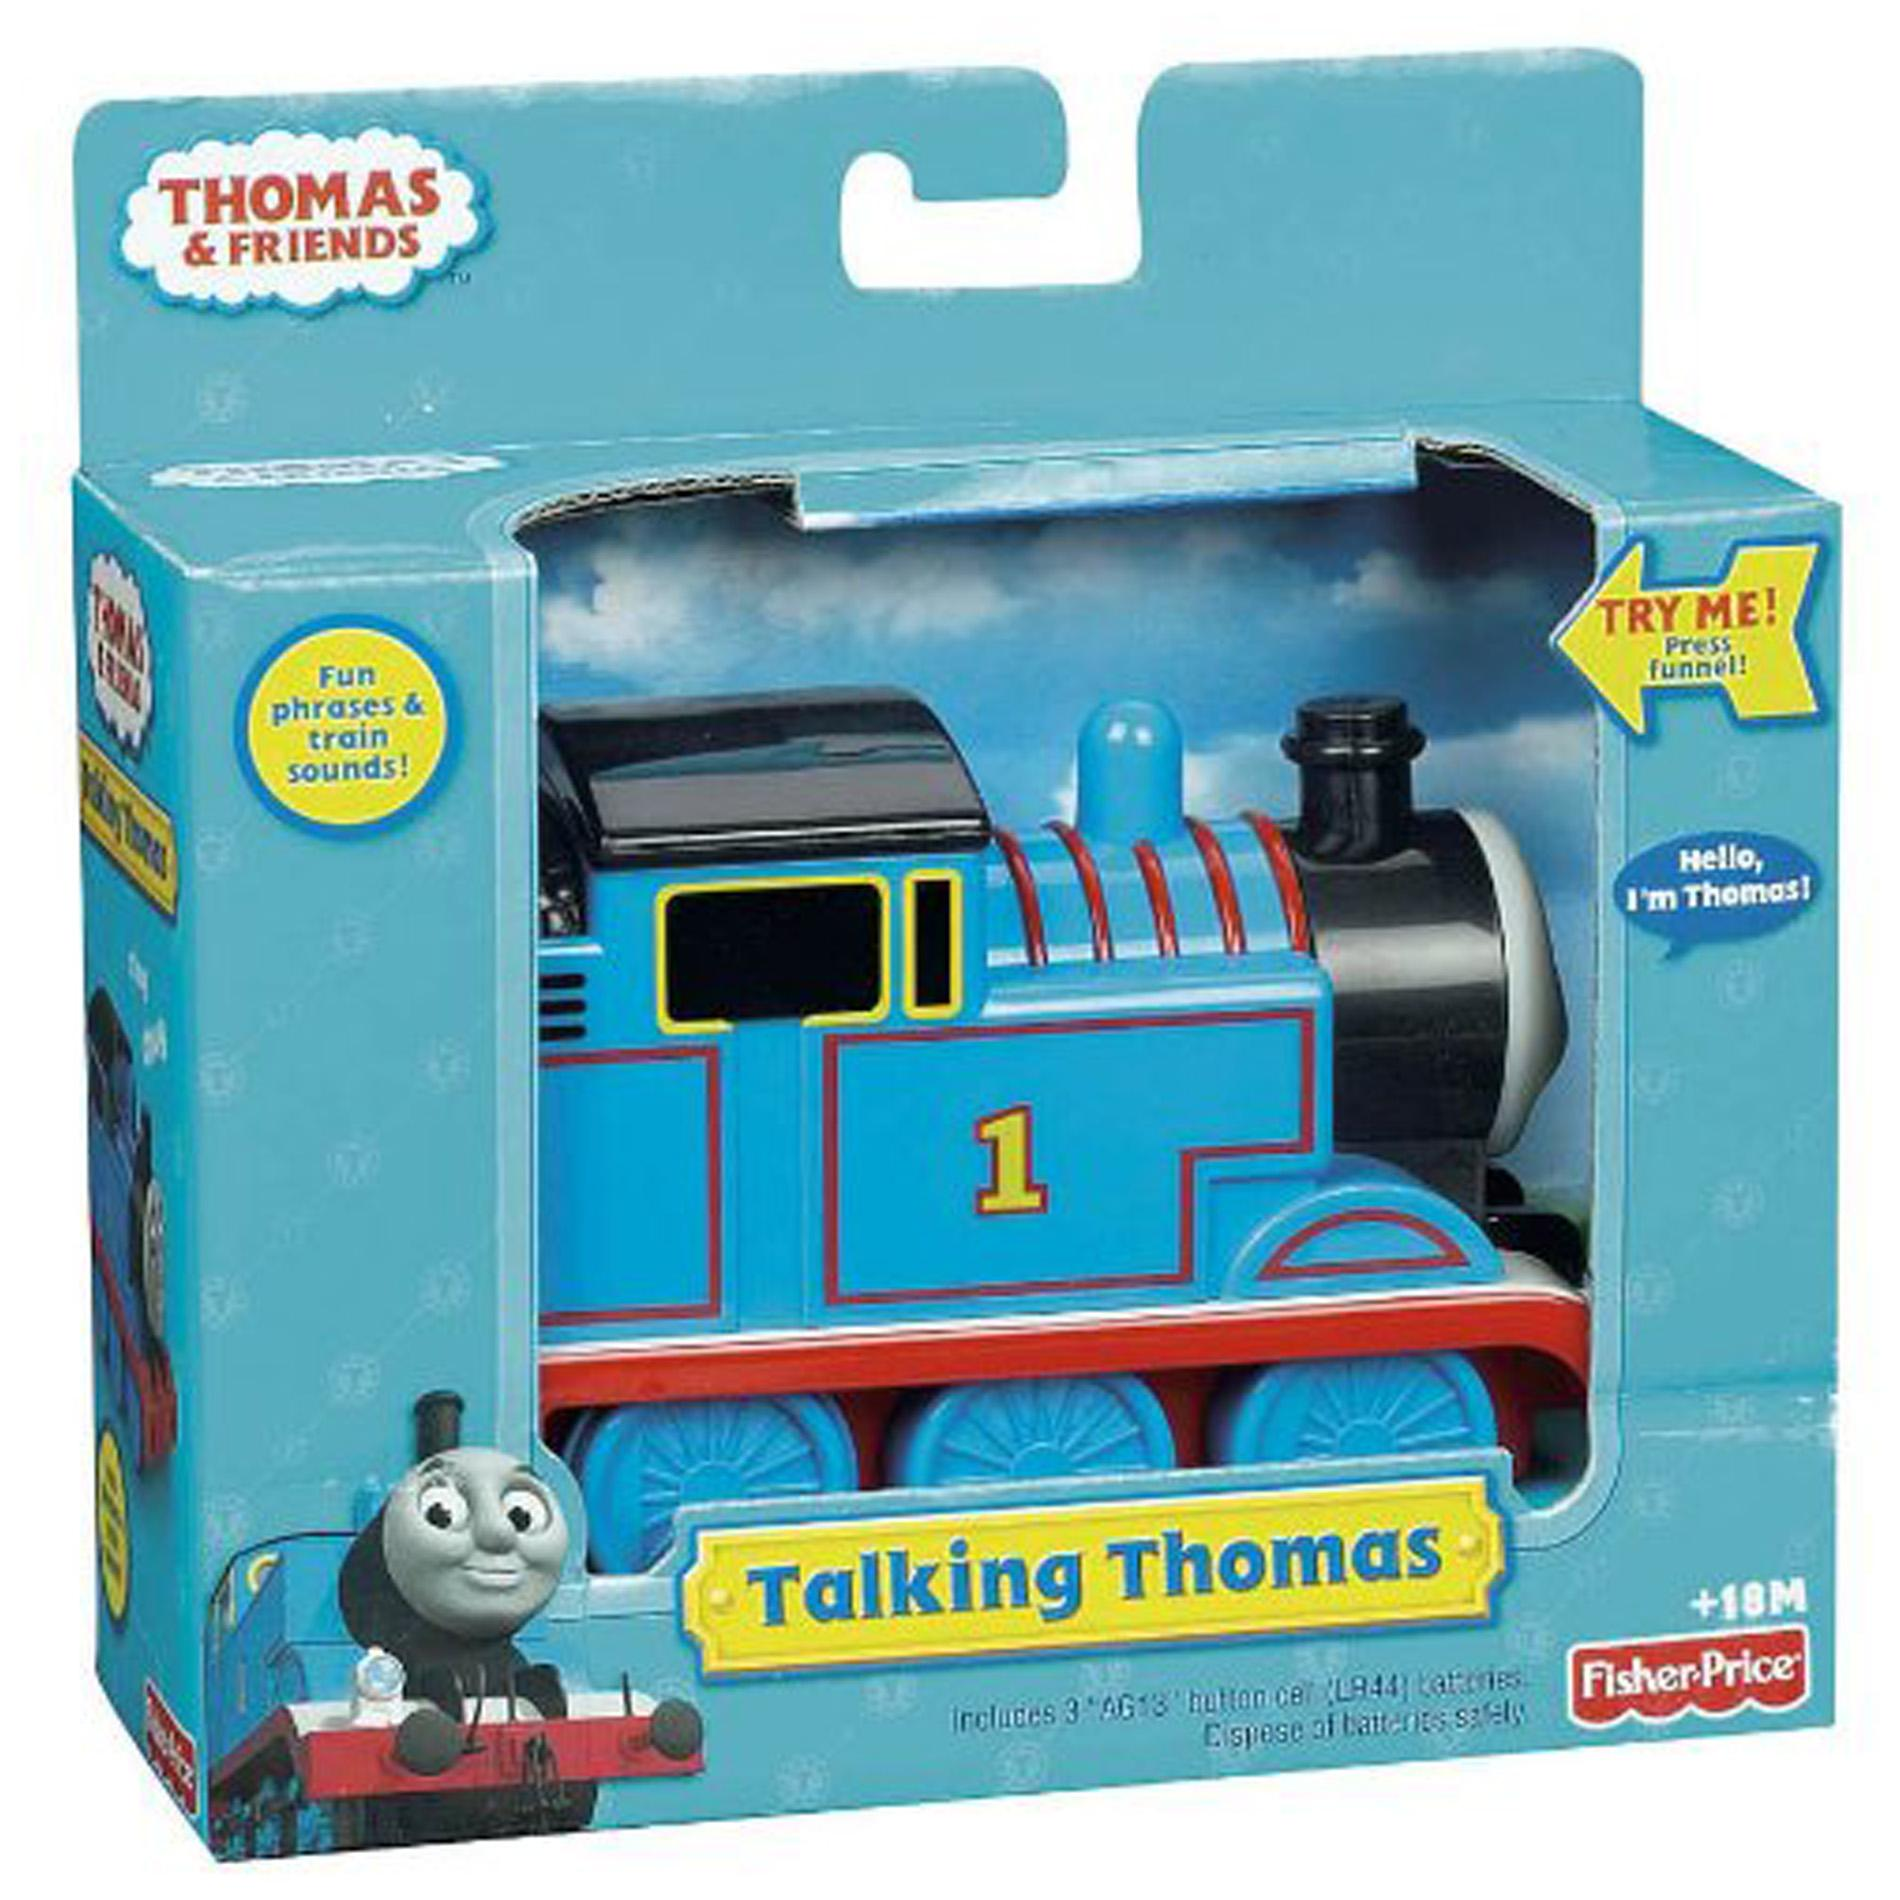 Best Thomas And Friends Toys And Trains : Fisher price thomas and friends talking toy train